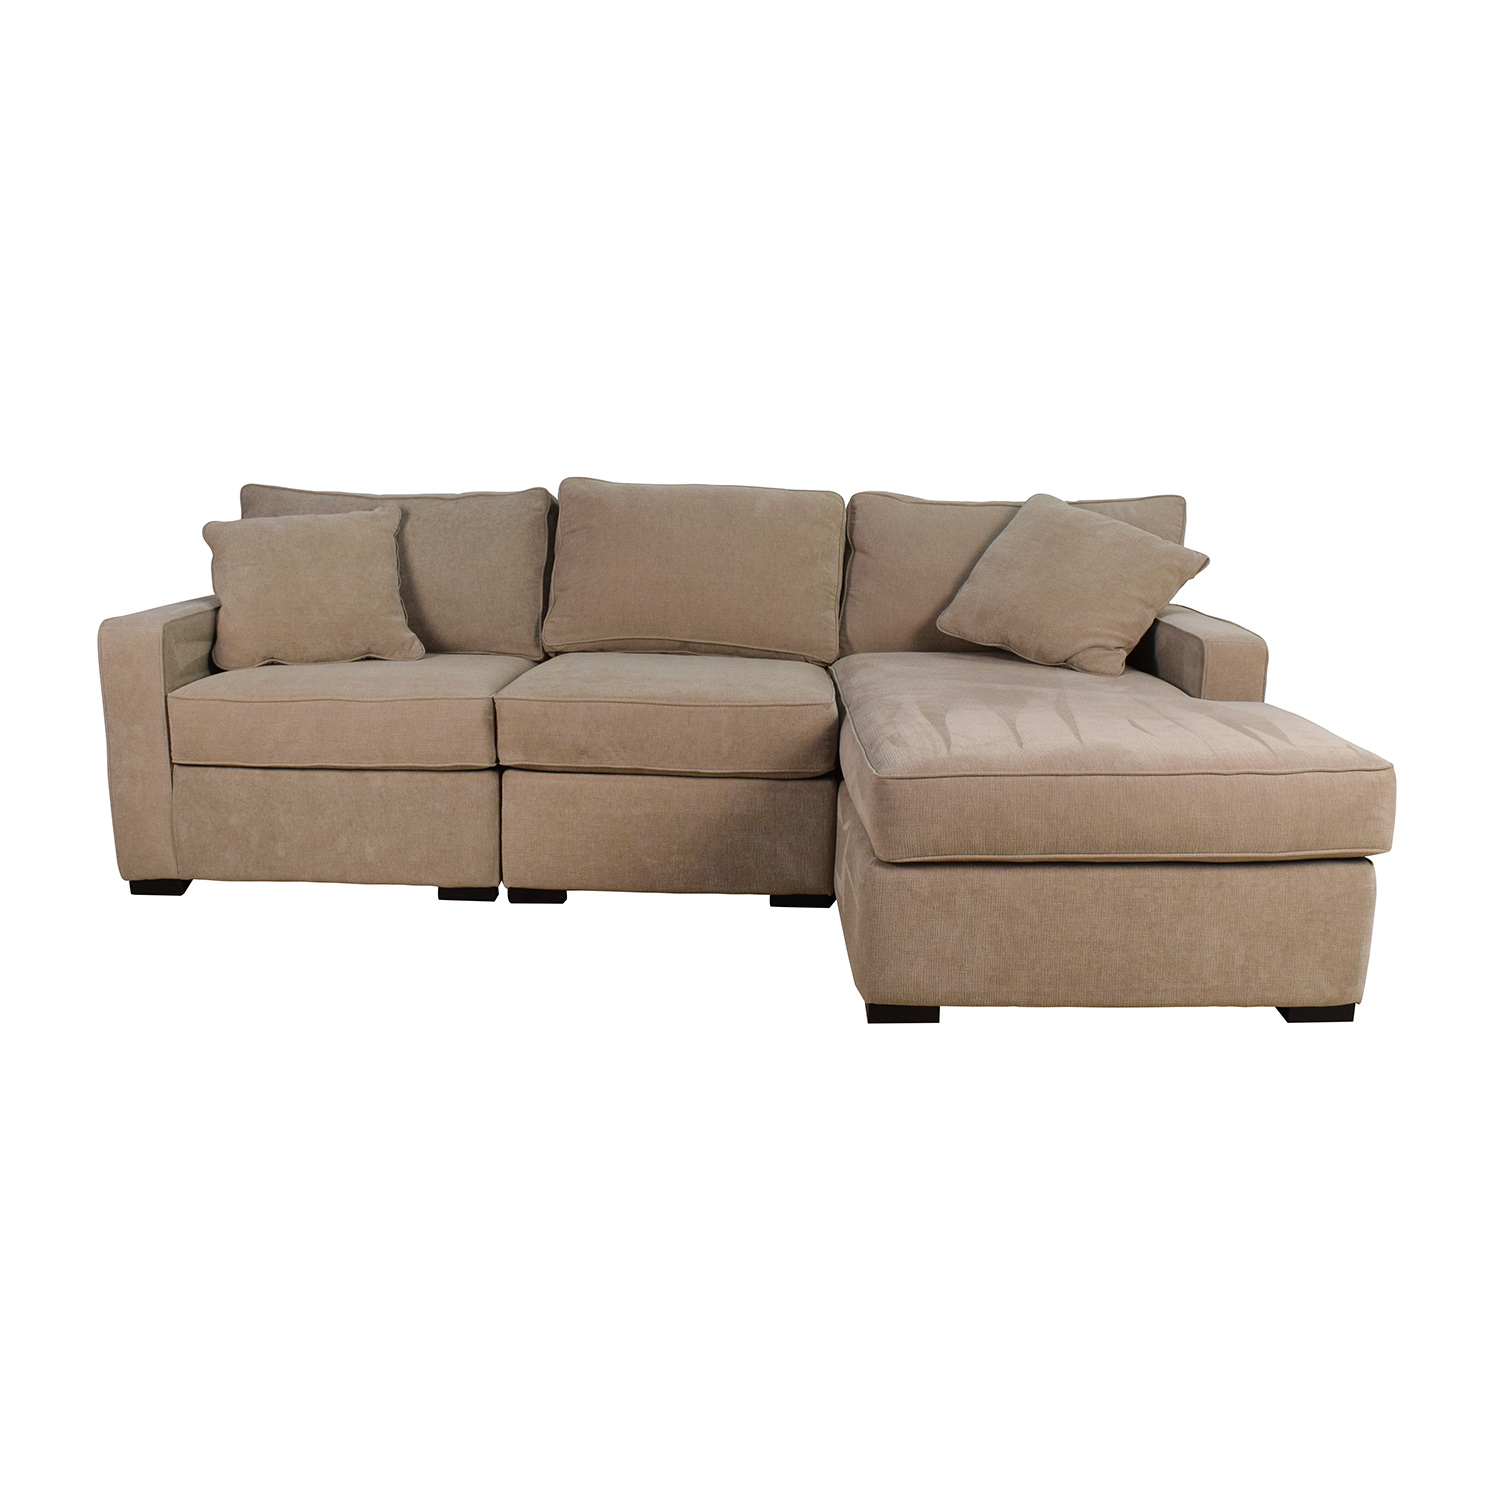 37% OFF - Macy\'s Radley 3-Piece Fabric Chaise Sectional Sofa / Sofas